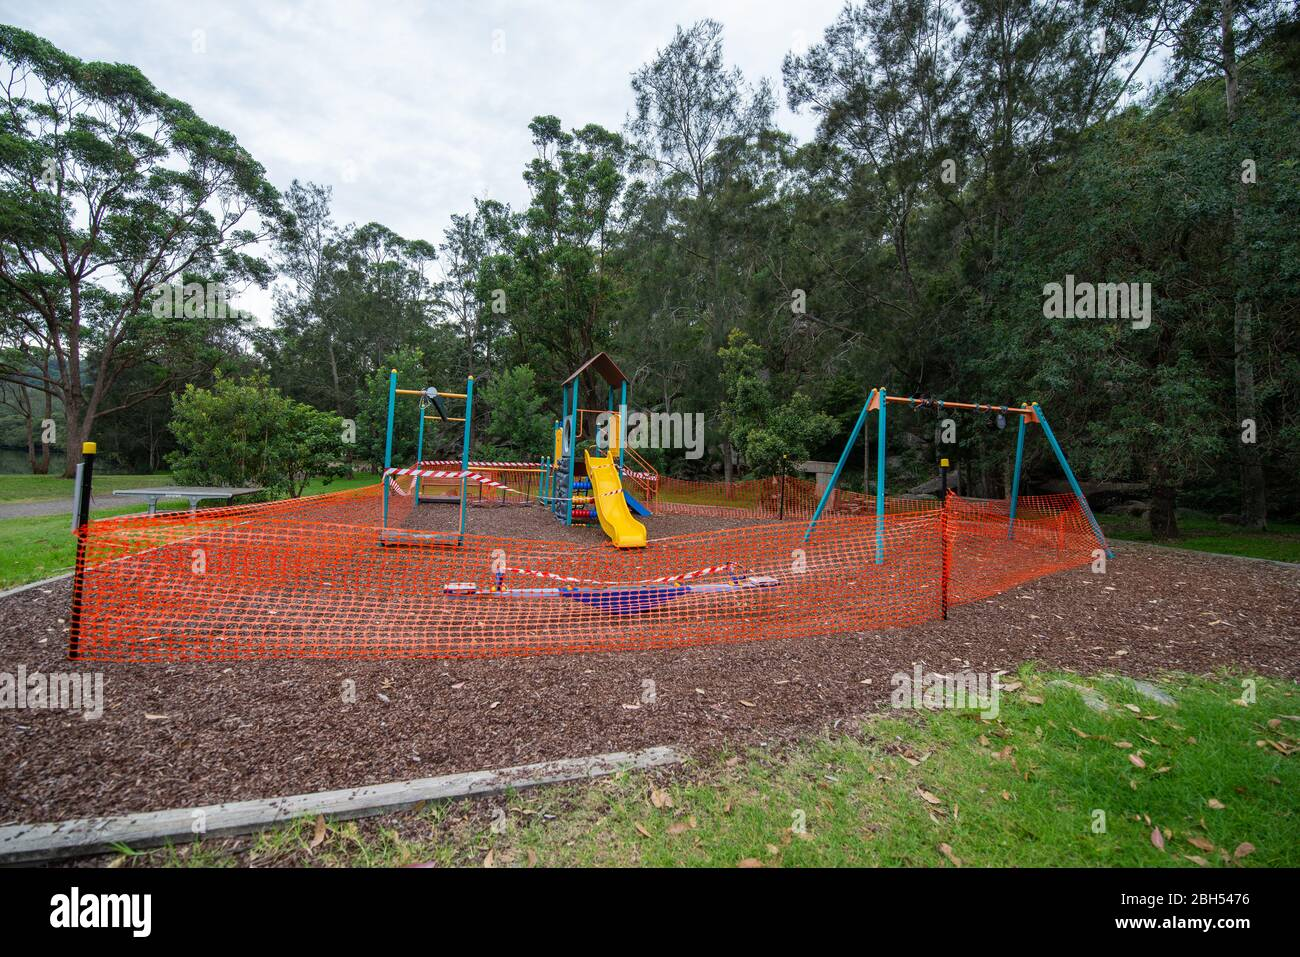 Due to COVID-19 pandemic, a public children's playground is closed and fenced off to the public. Stock Photo